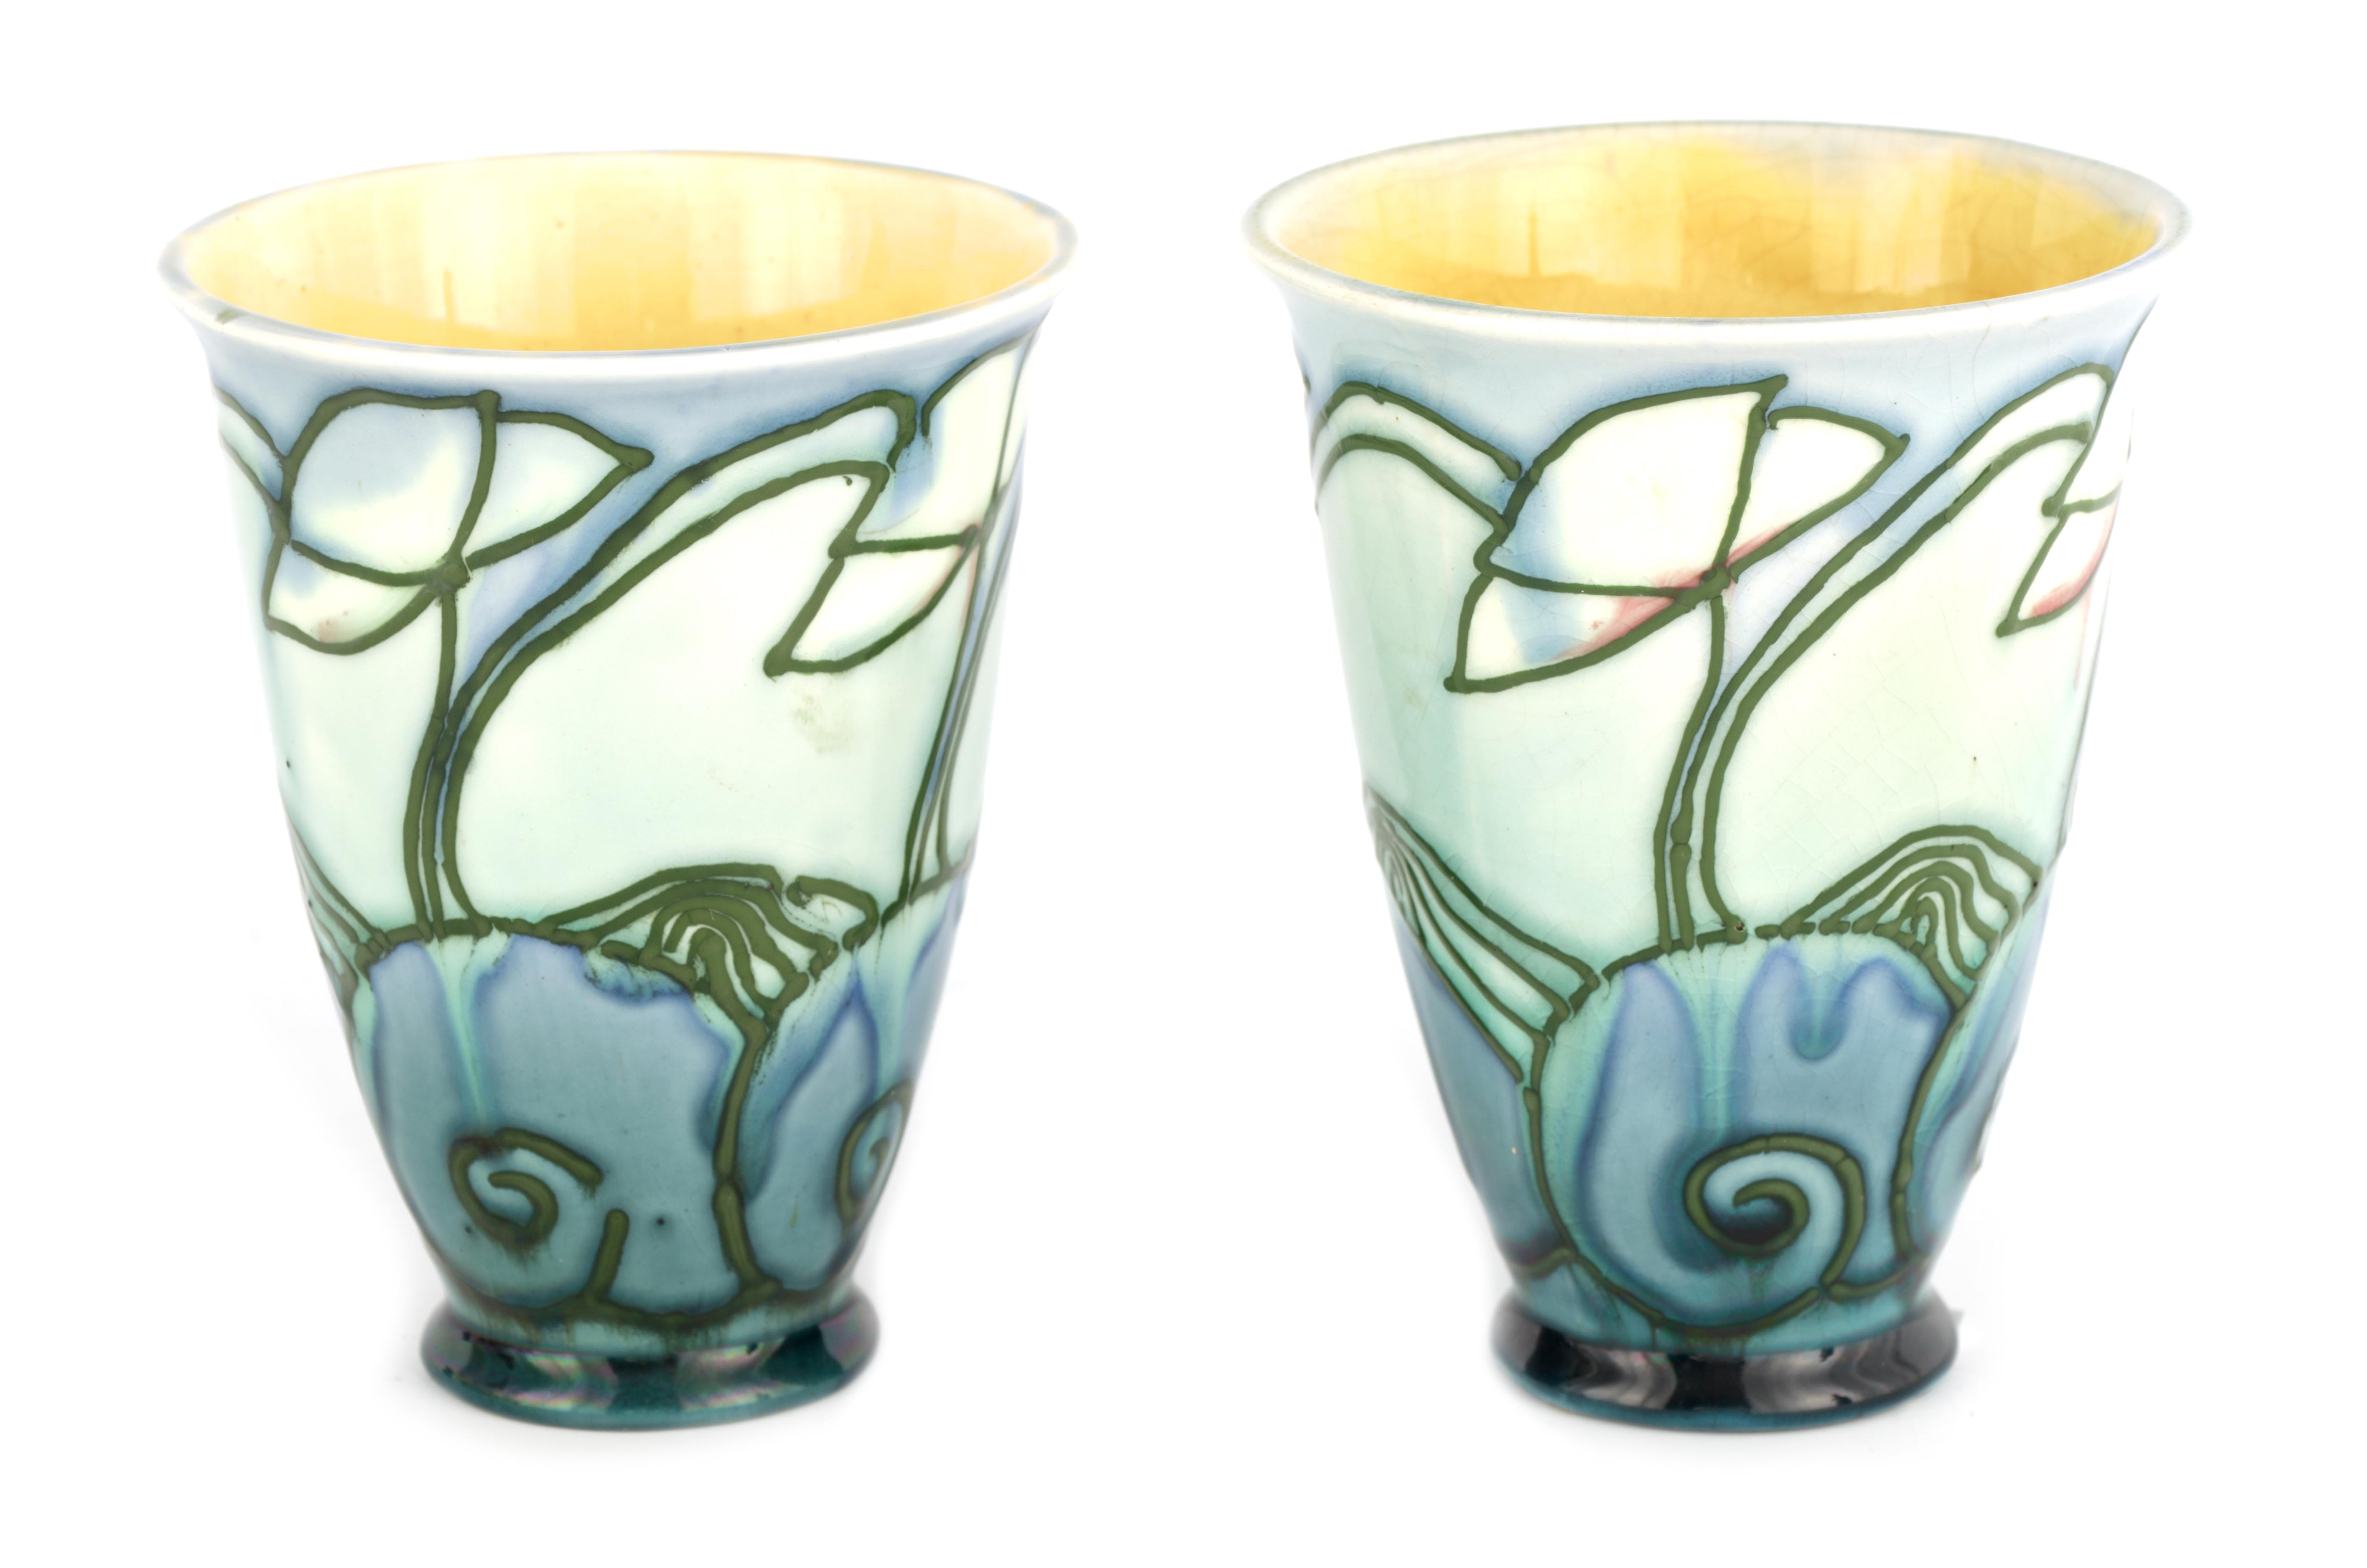 A PAIR OF MINTON LTD SECESSIONIST WARE TAPERING BEAKER VASES tube lined and decorated with